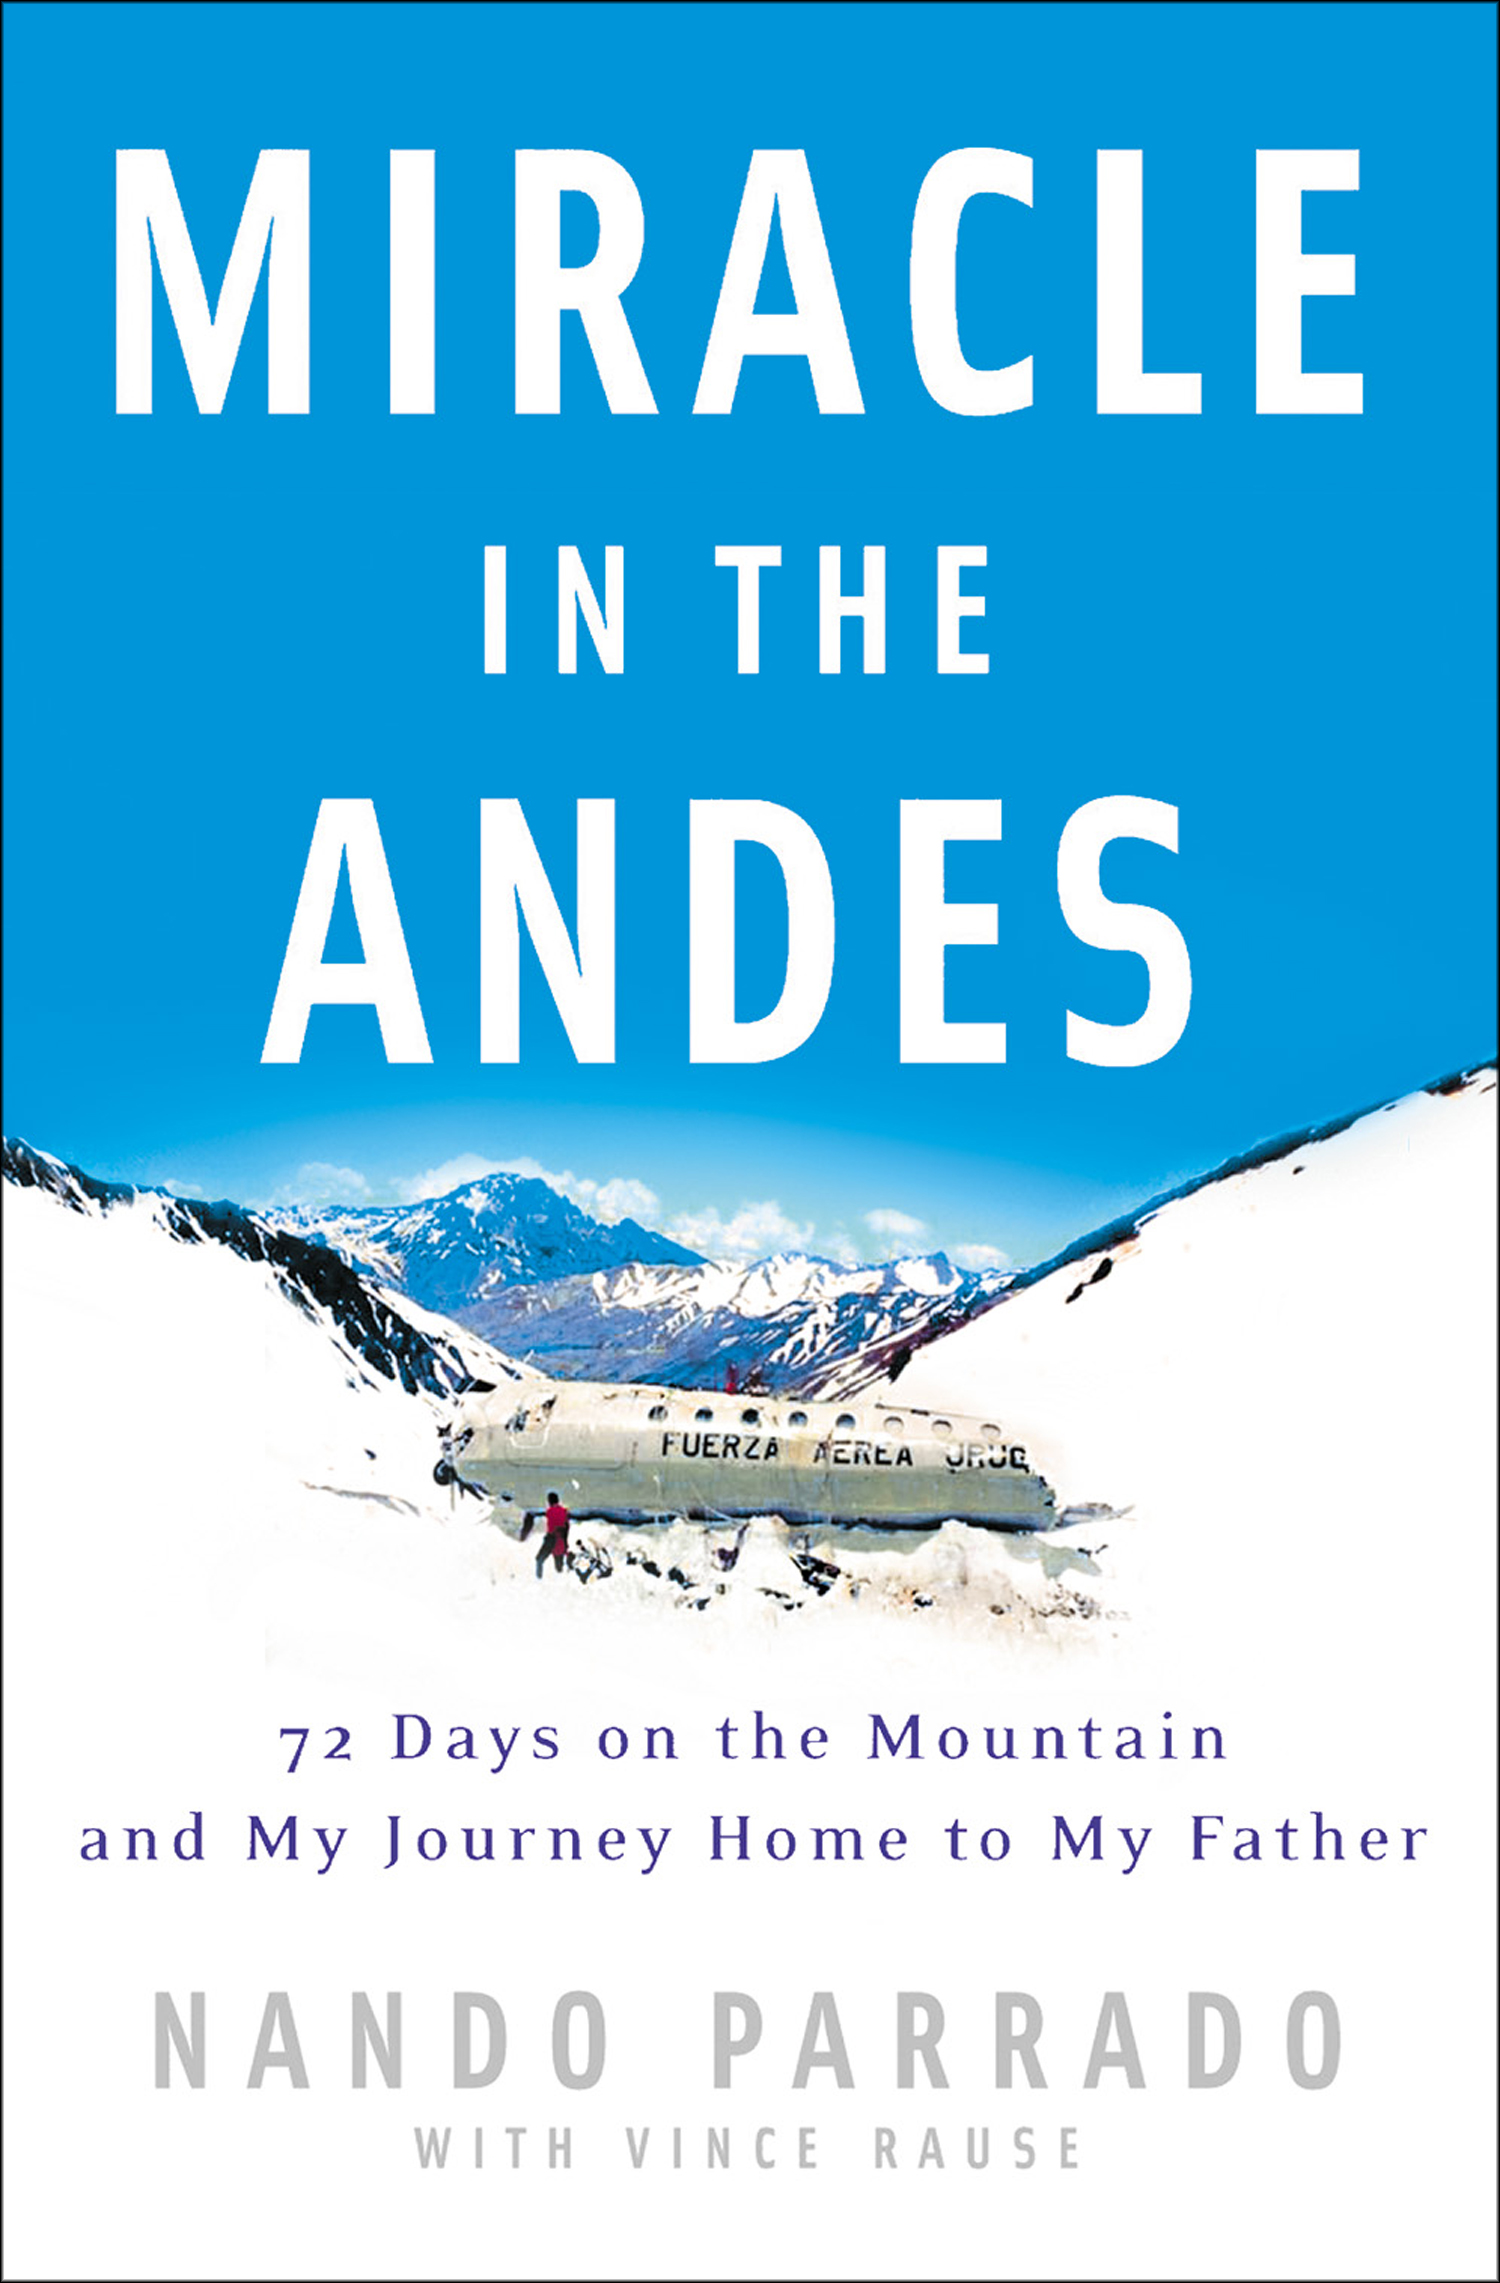 MIRACLE-IN-THE-ANDES-tpb-ss6.jpg